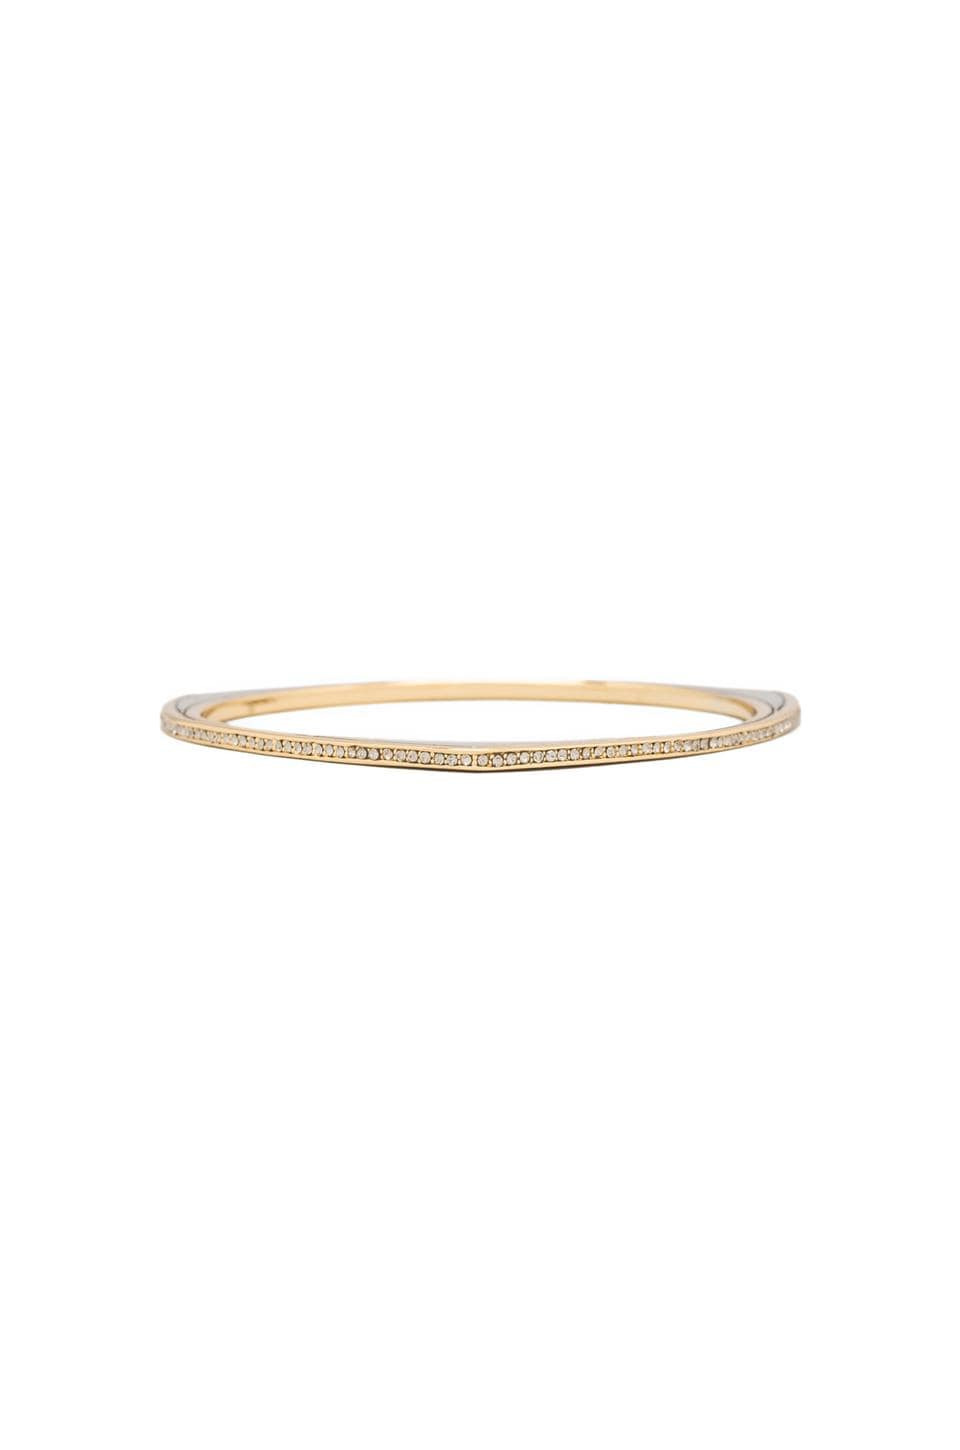 House of Harlow Modern Tribal Pave Bangle in Two Tone